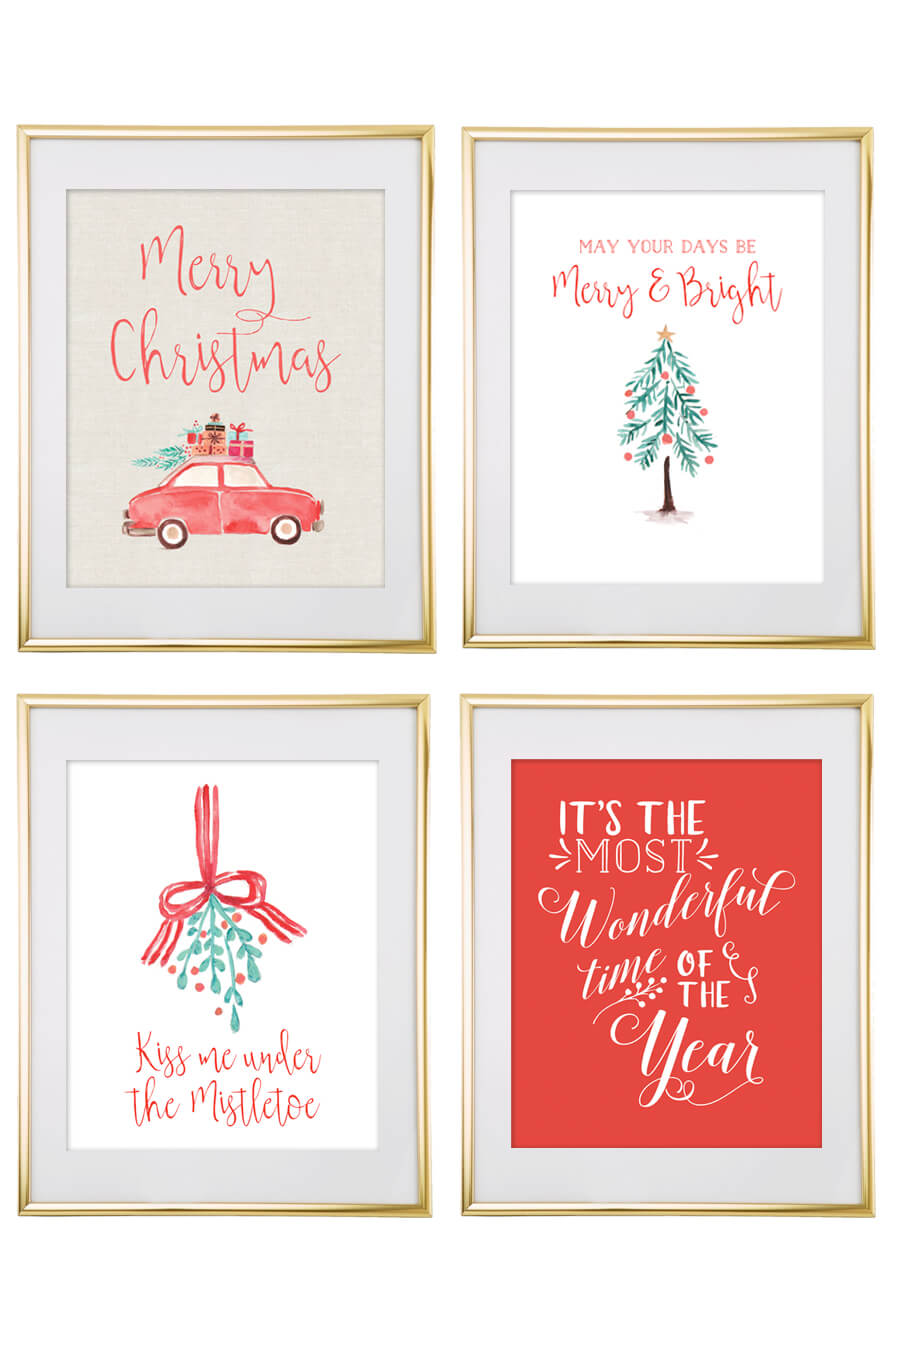 Satisfactory image regarding christmas art printable